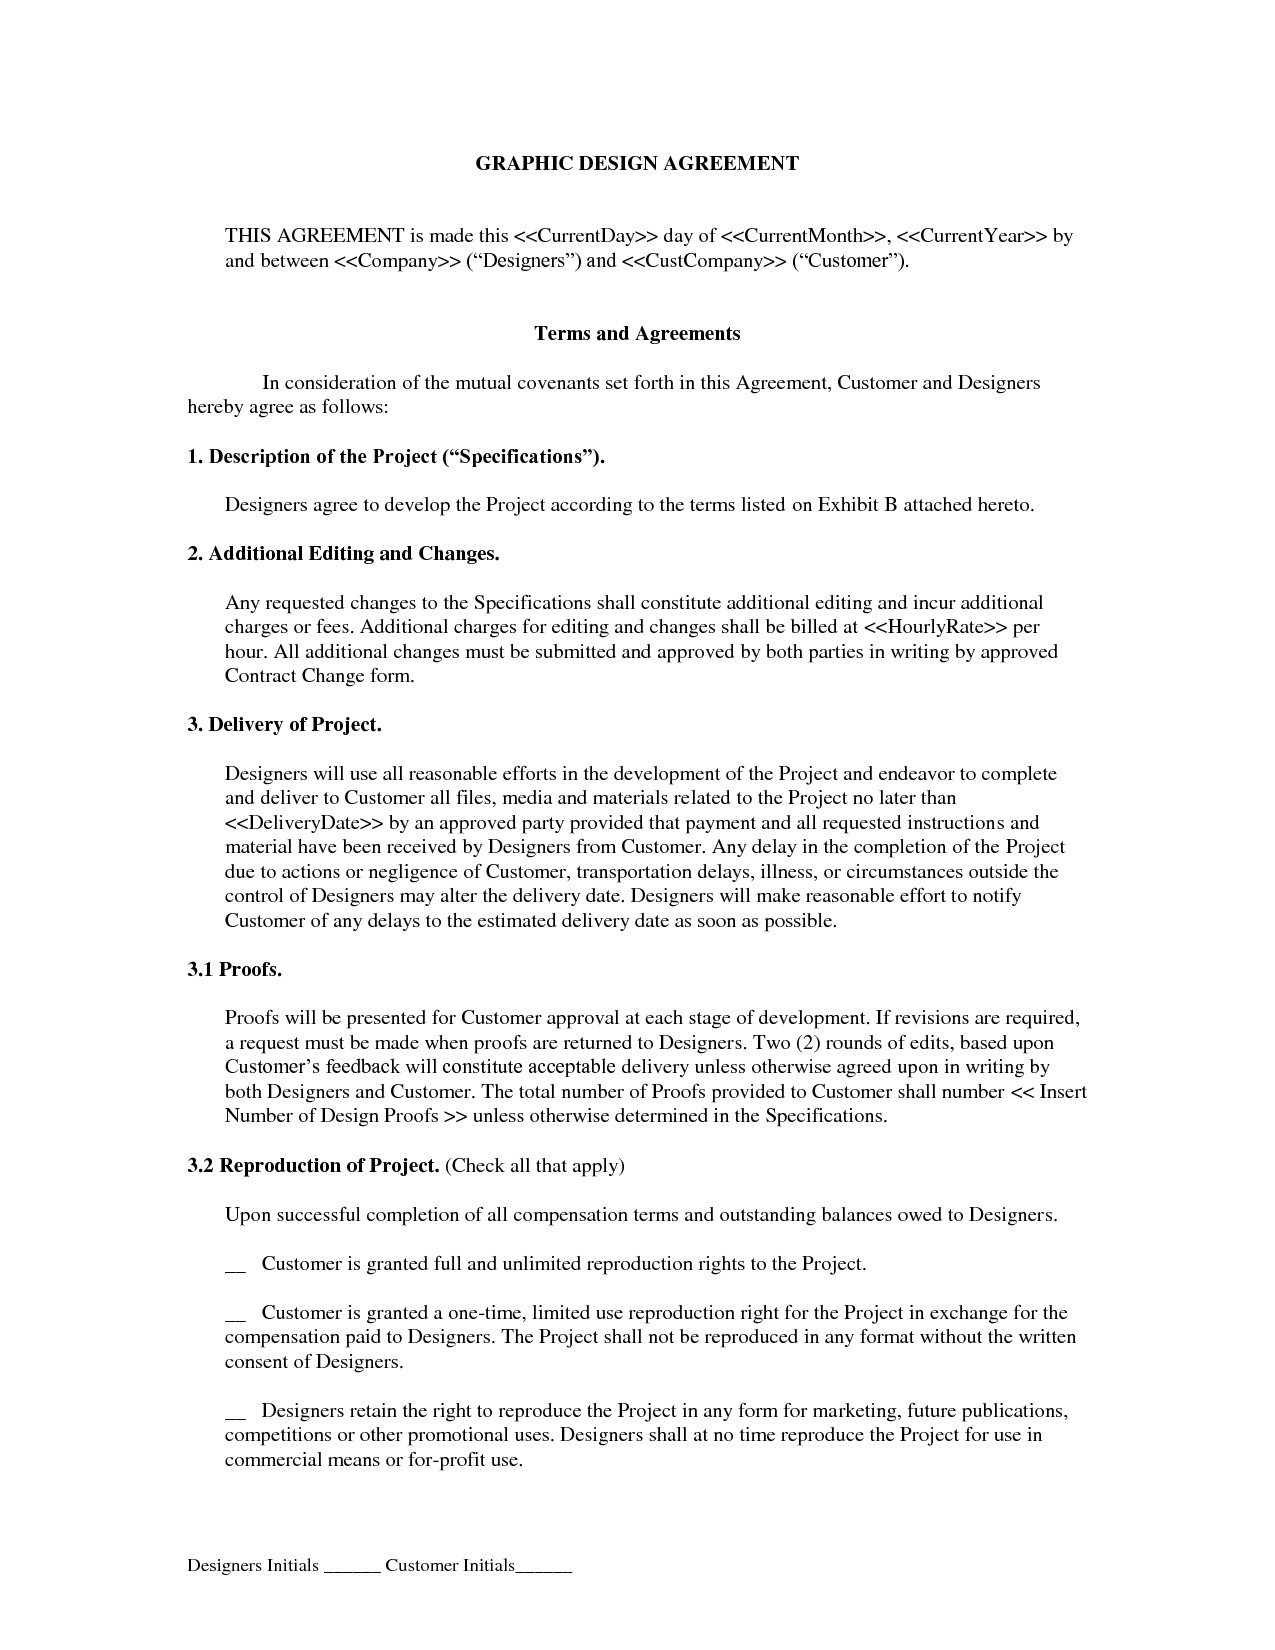 Freelance Graphic Design Contract Template Graphic Design Freelance Contract